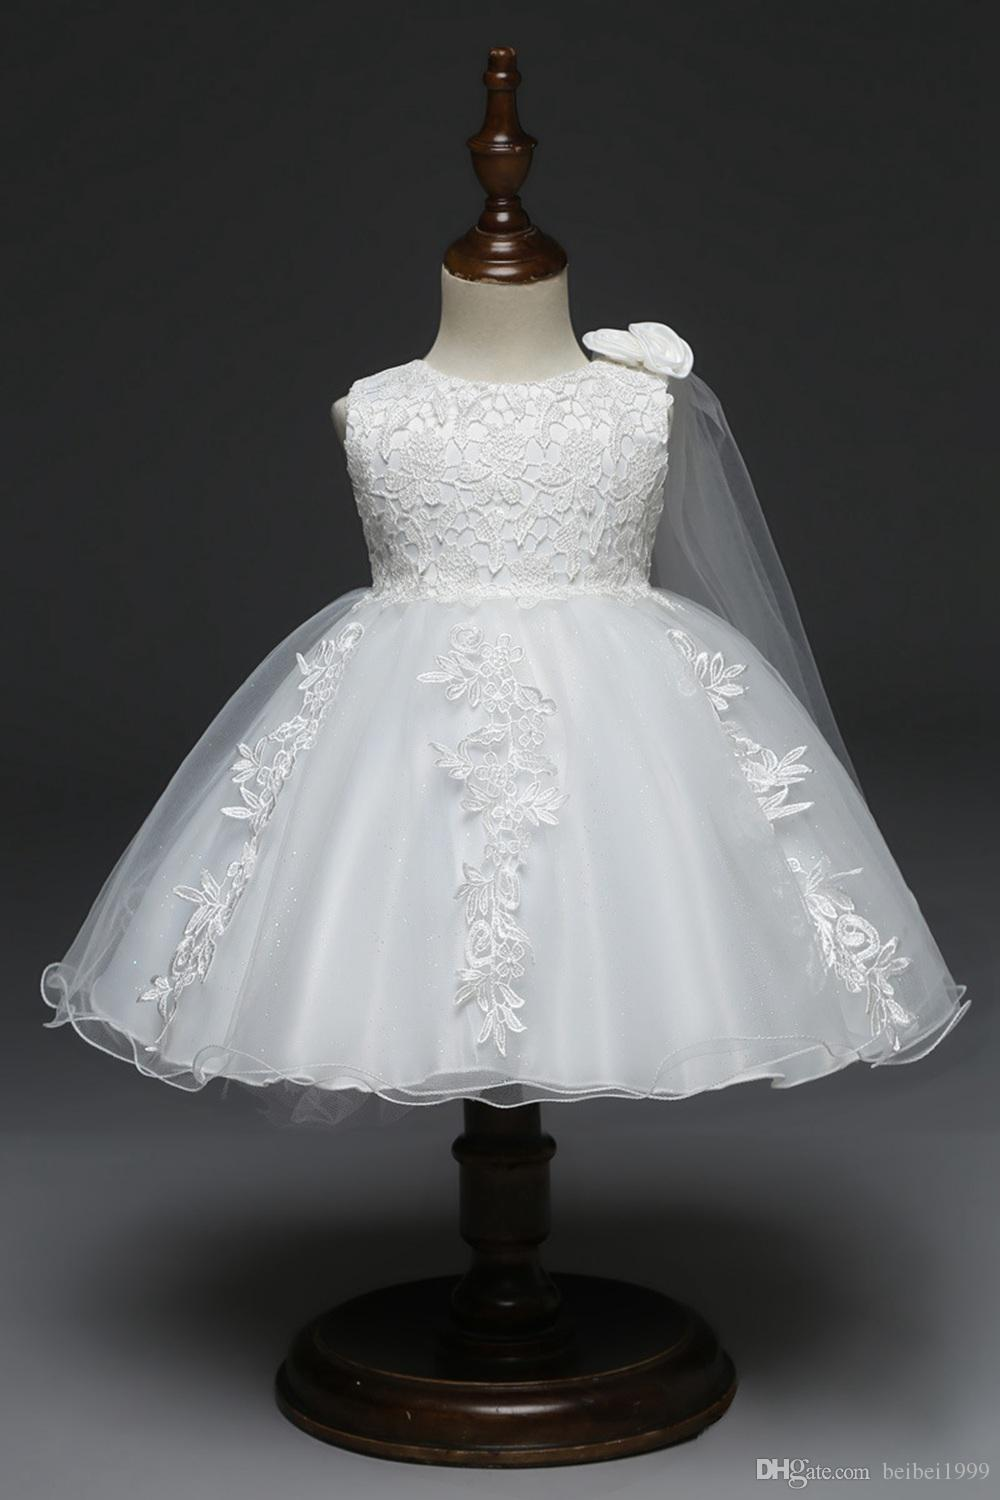 bedec363b827 2019 Beautiful Flower Girl Dresses for Weddings White Pink Lace Short  Sleeves Appliques Kids Formal Wear First Communion Dress Kids Dresses  Flower Girls' ...